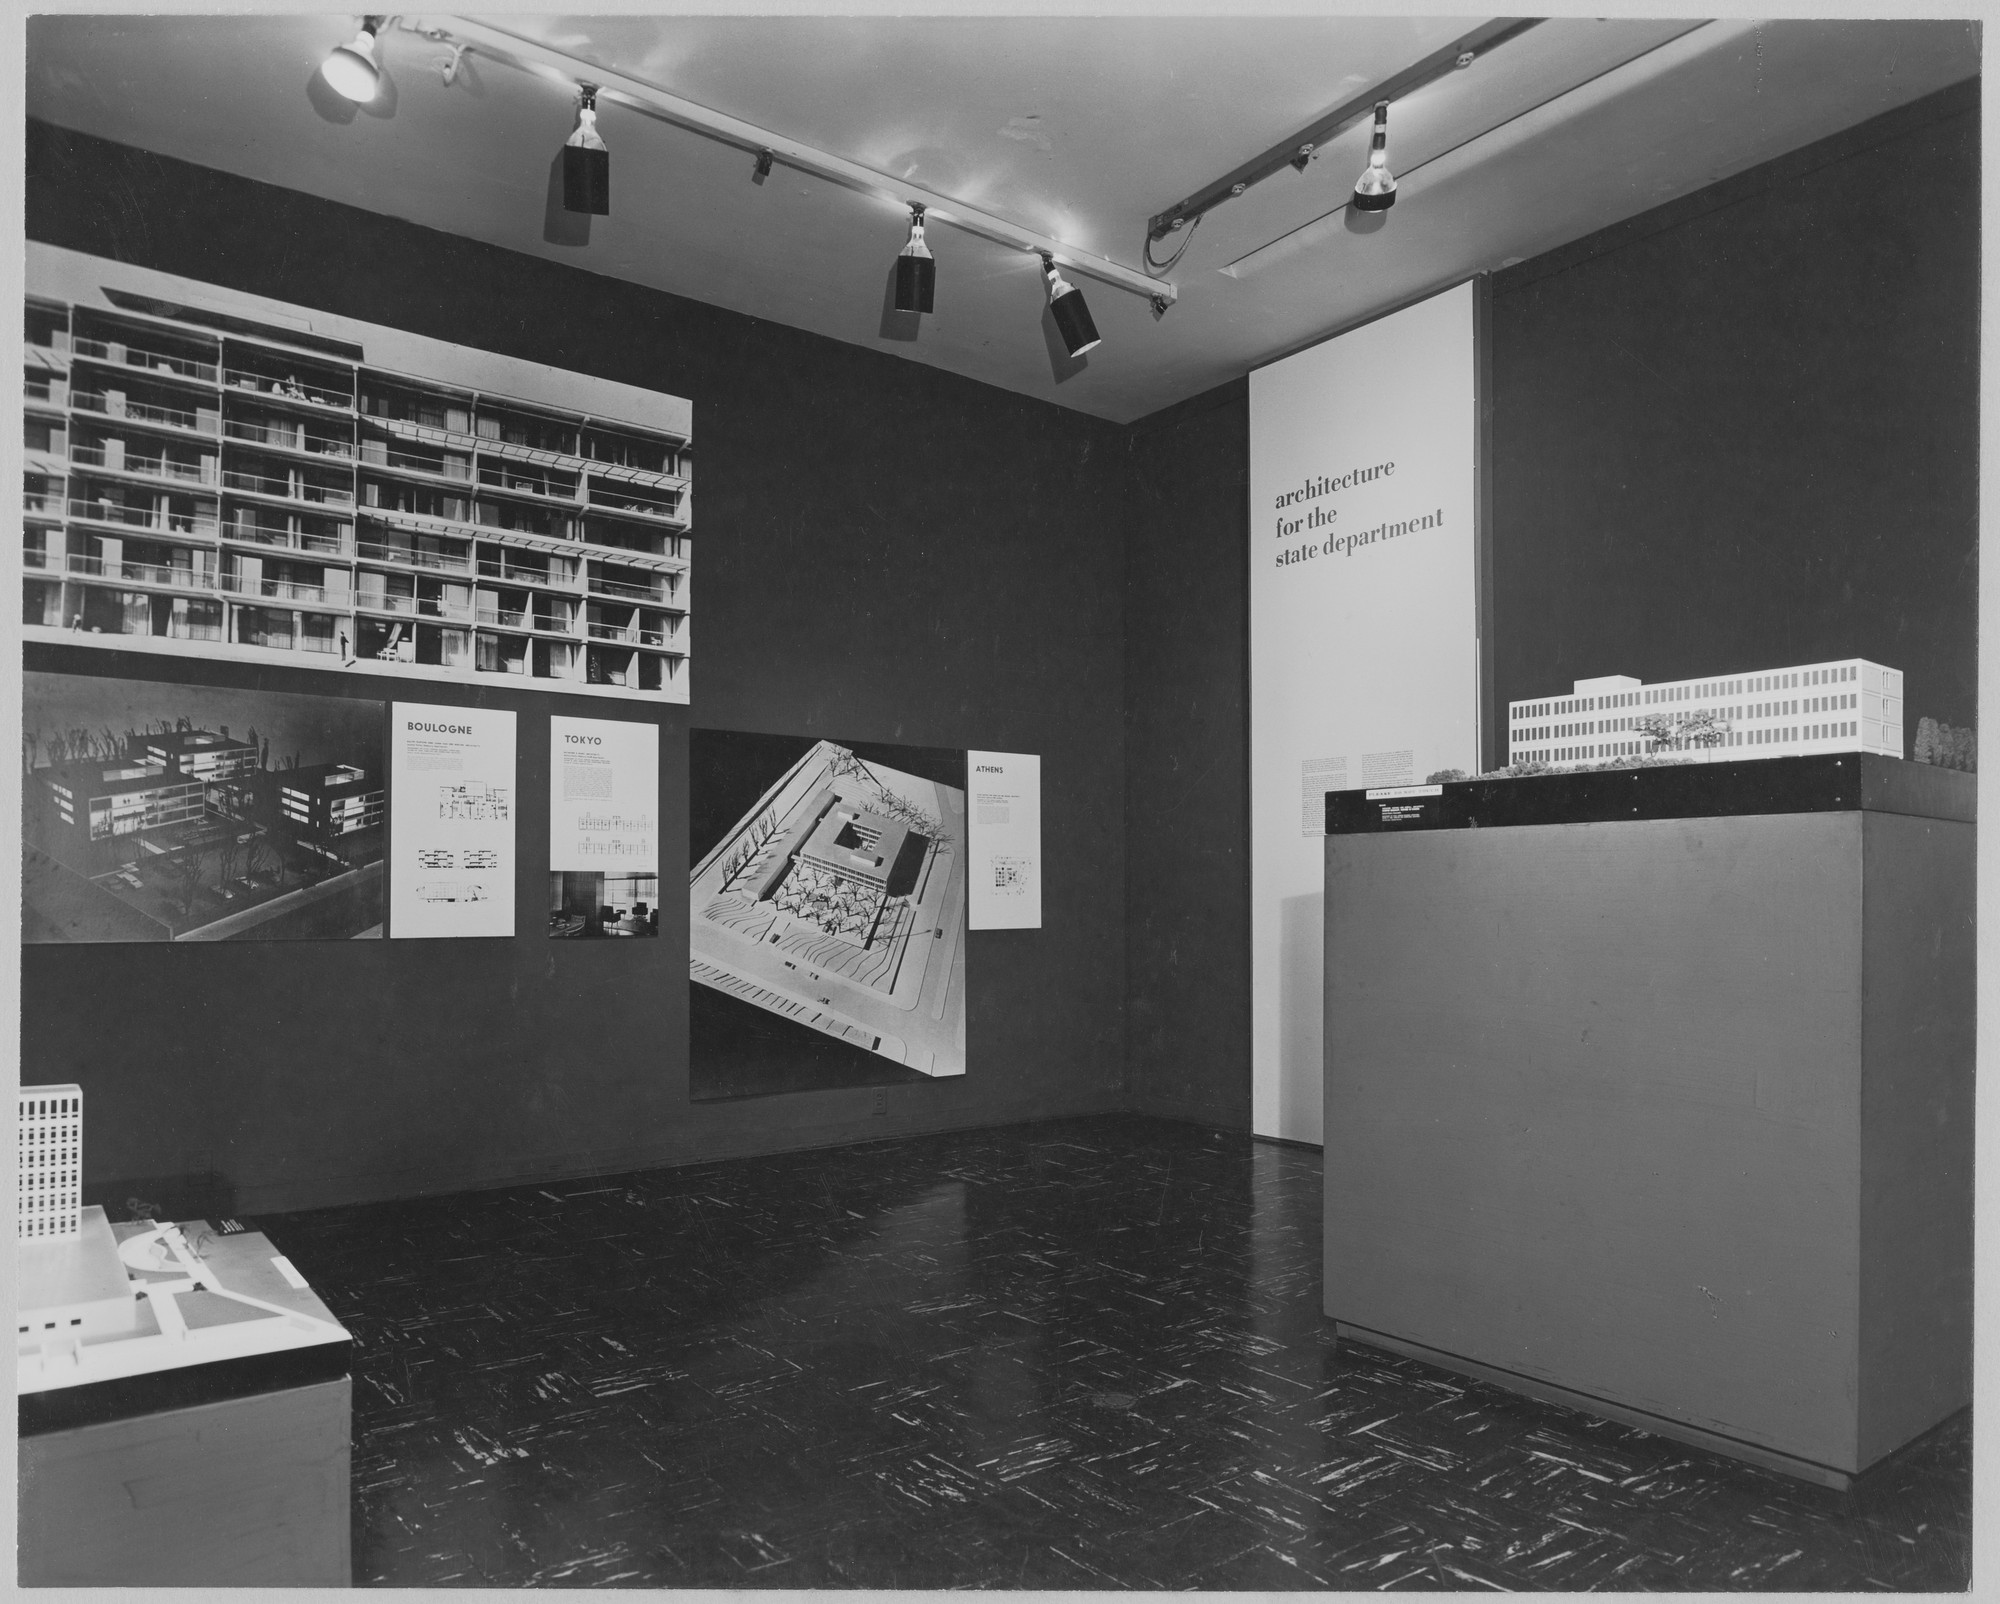 "Installation view of the exhibition, ""Architecture for the State Department."" October 6, 1953–November 22, 1953. Photographic Archive. The Museum of Modern Art Archives, New York. IN543.1. Photograph by Soichi Sunami."